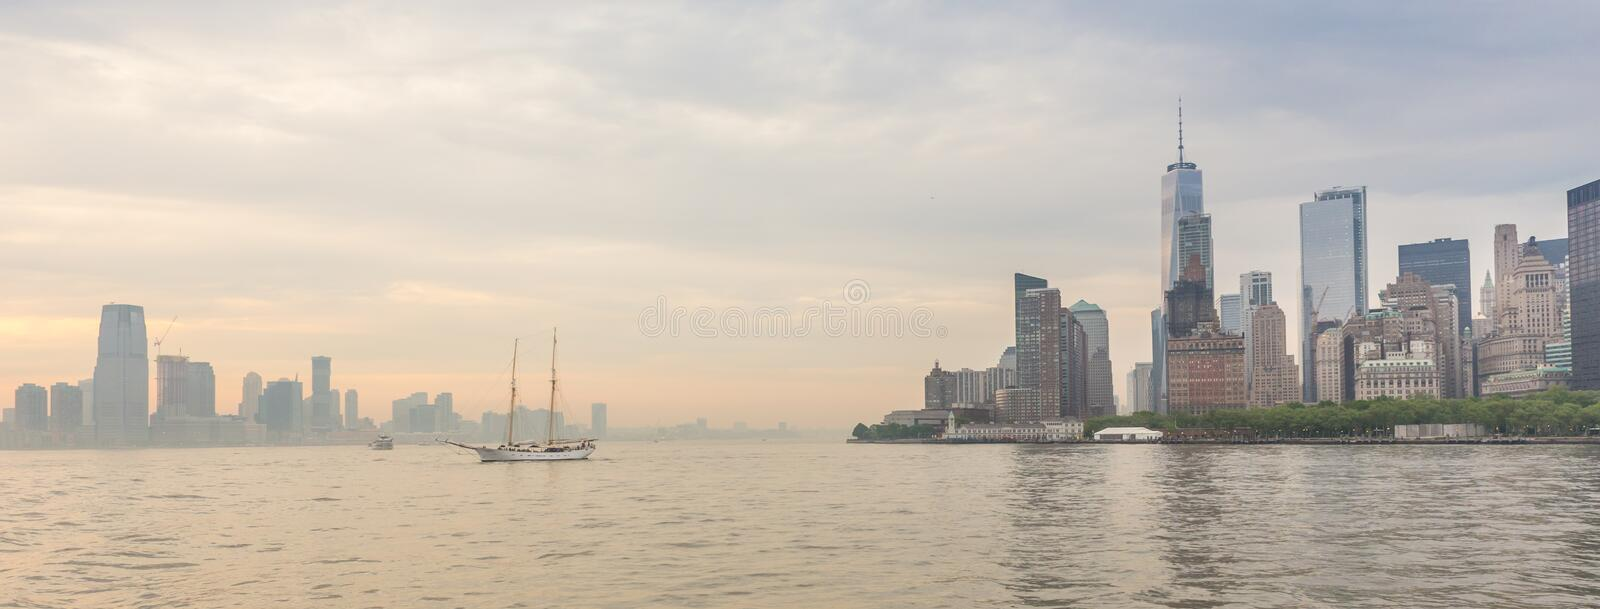 Panoramic view of Lower Manhattan and Jersey City, New York City, USA stock photography